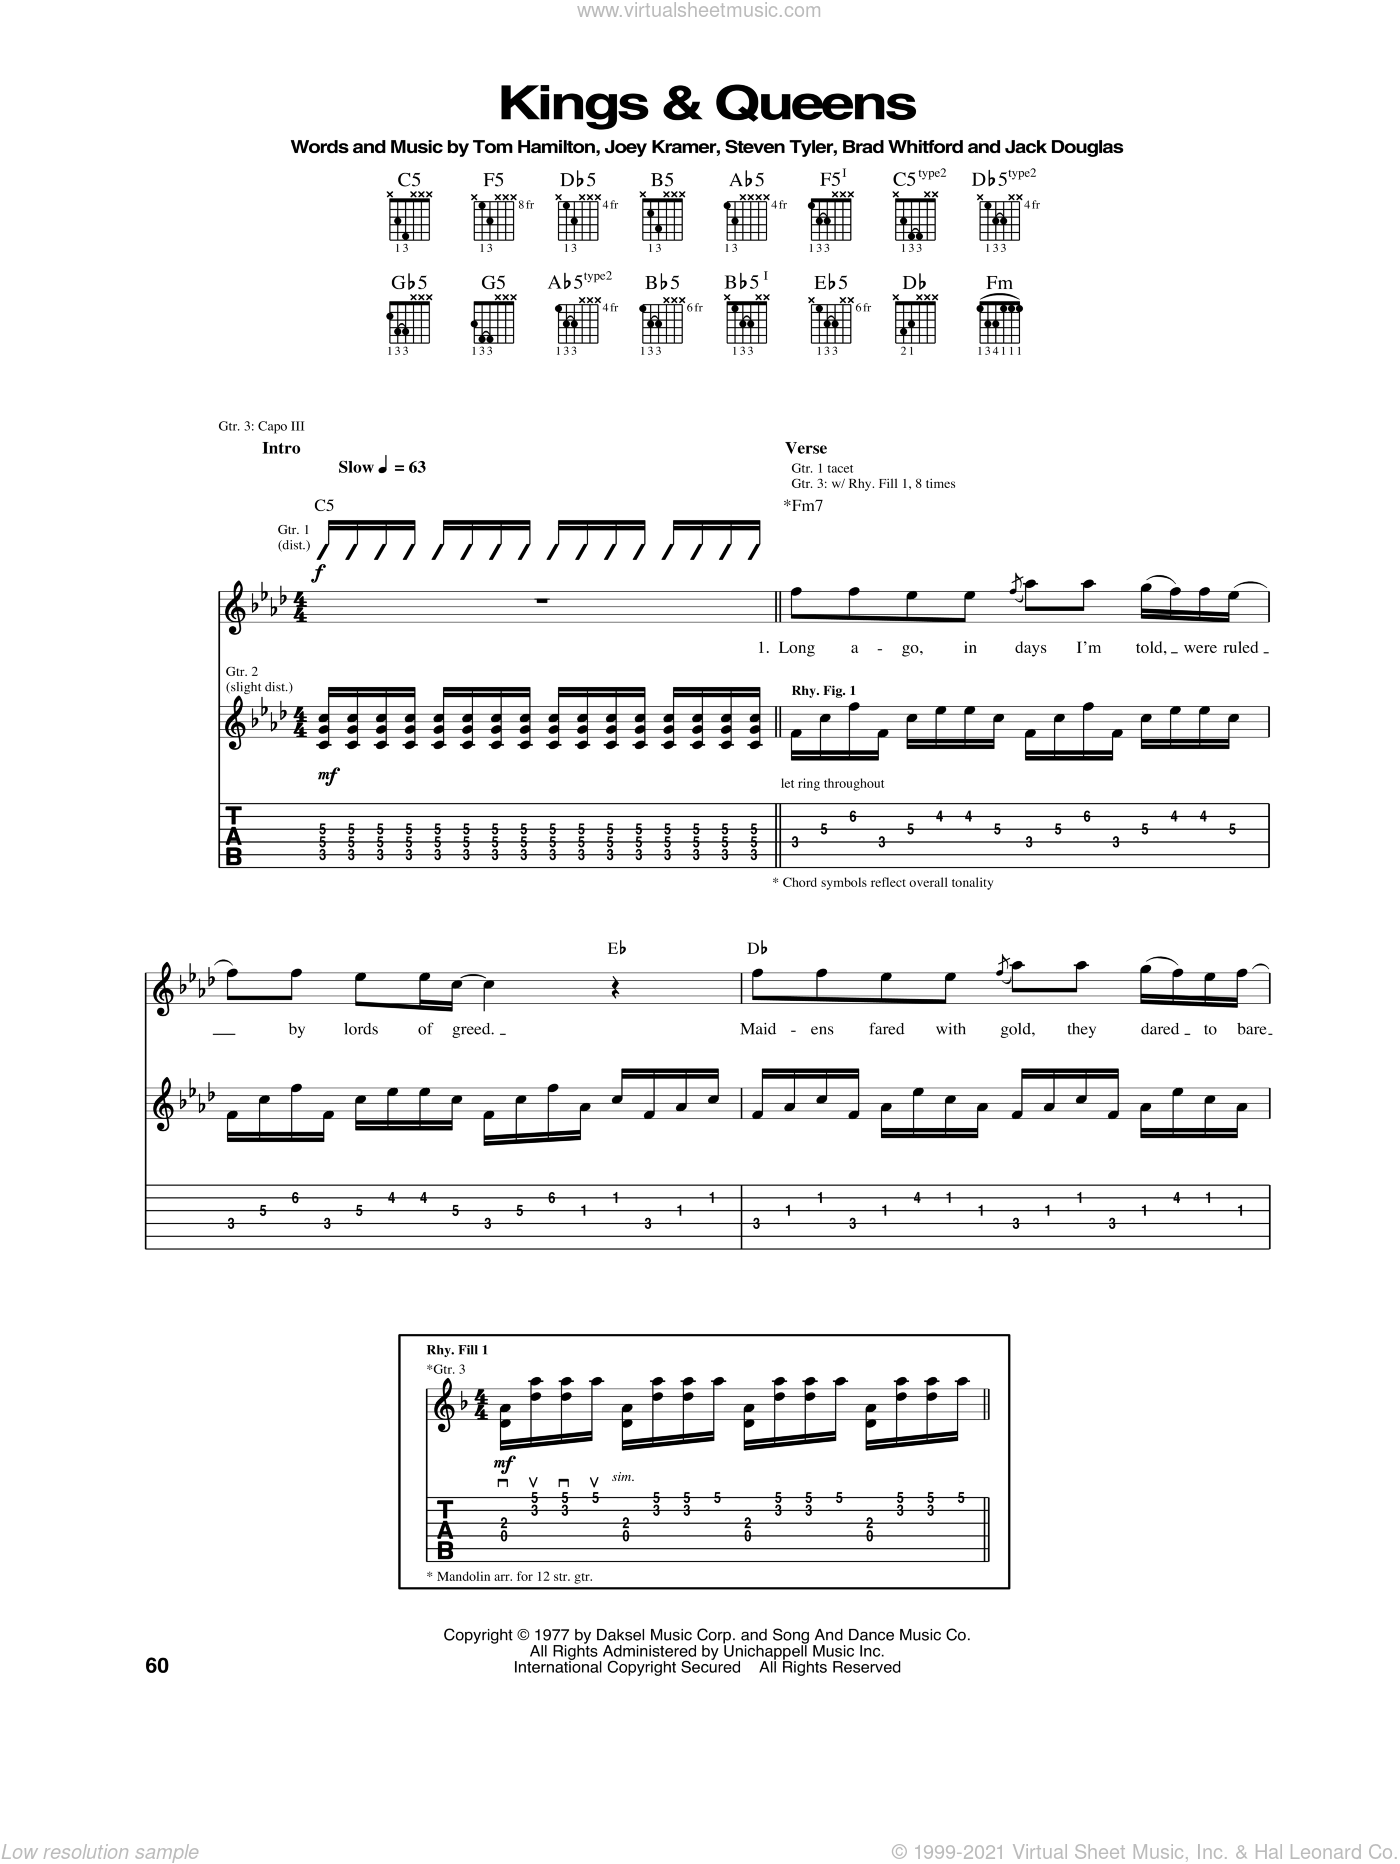 Kings and Queens sheet music for guitar (tablature) by Tom Hamilton